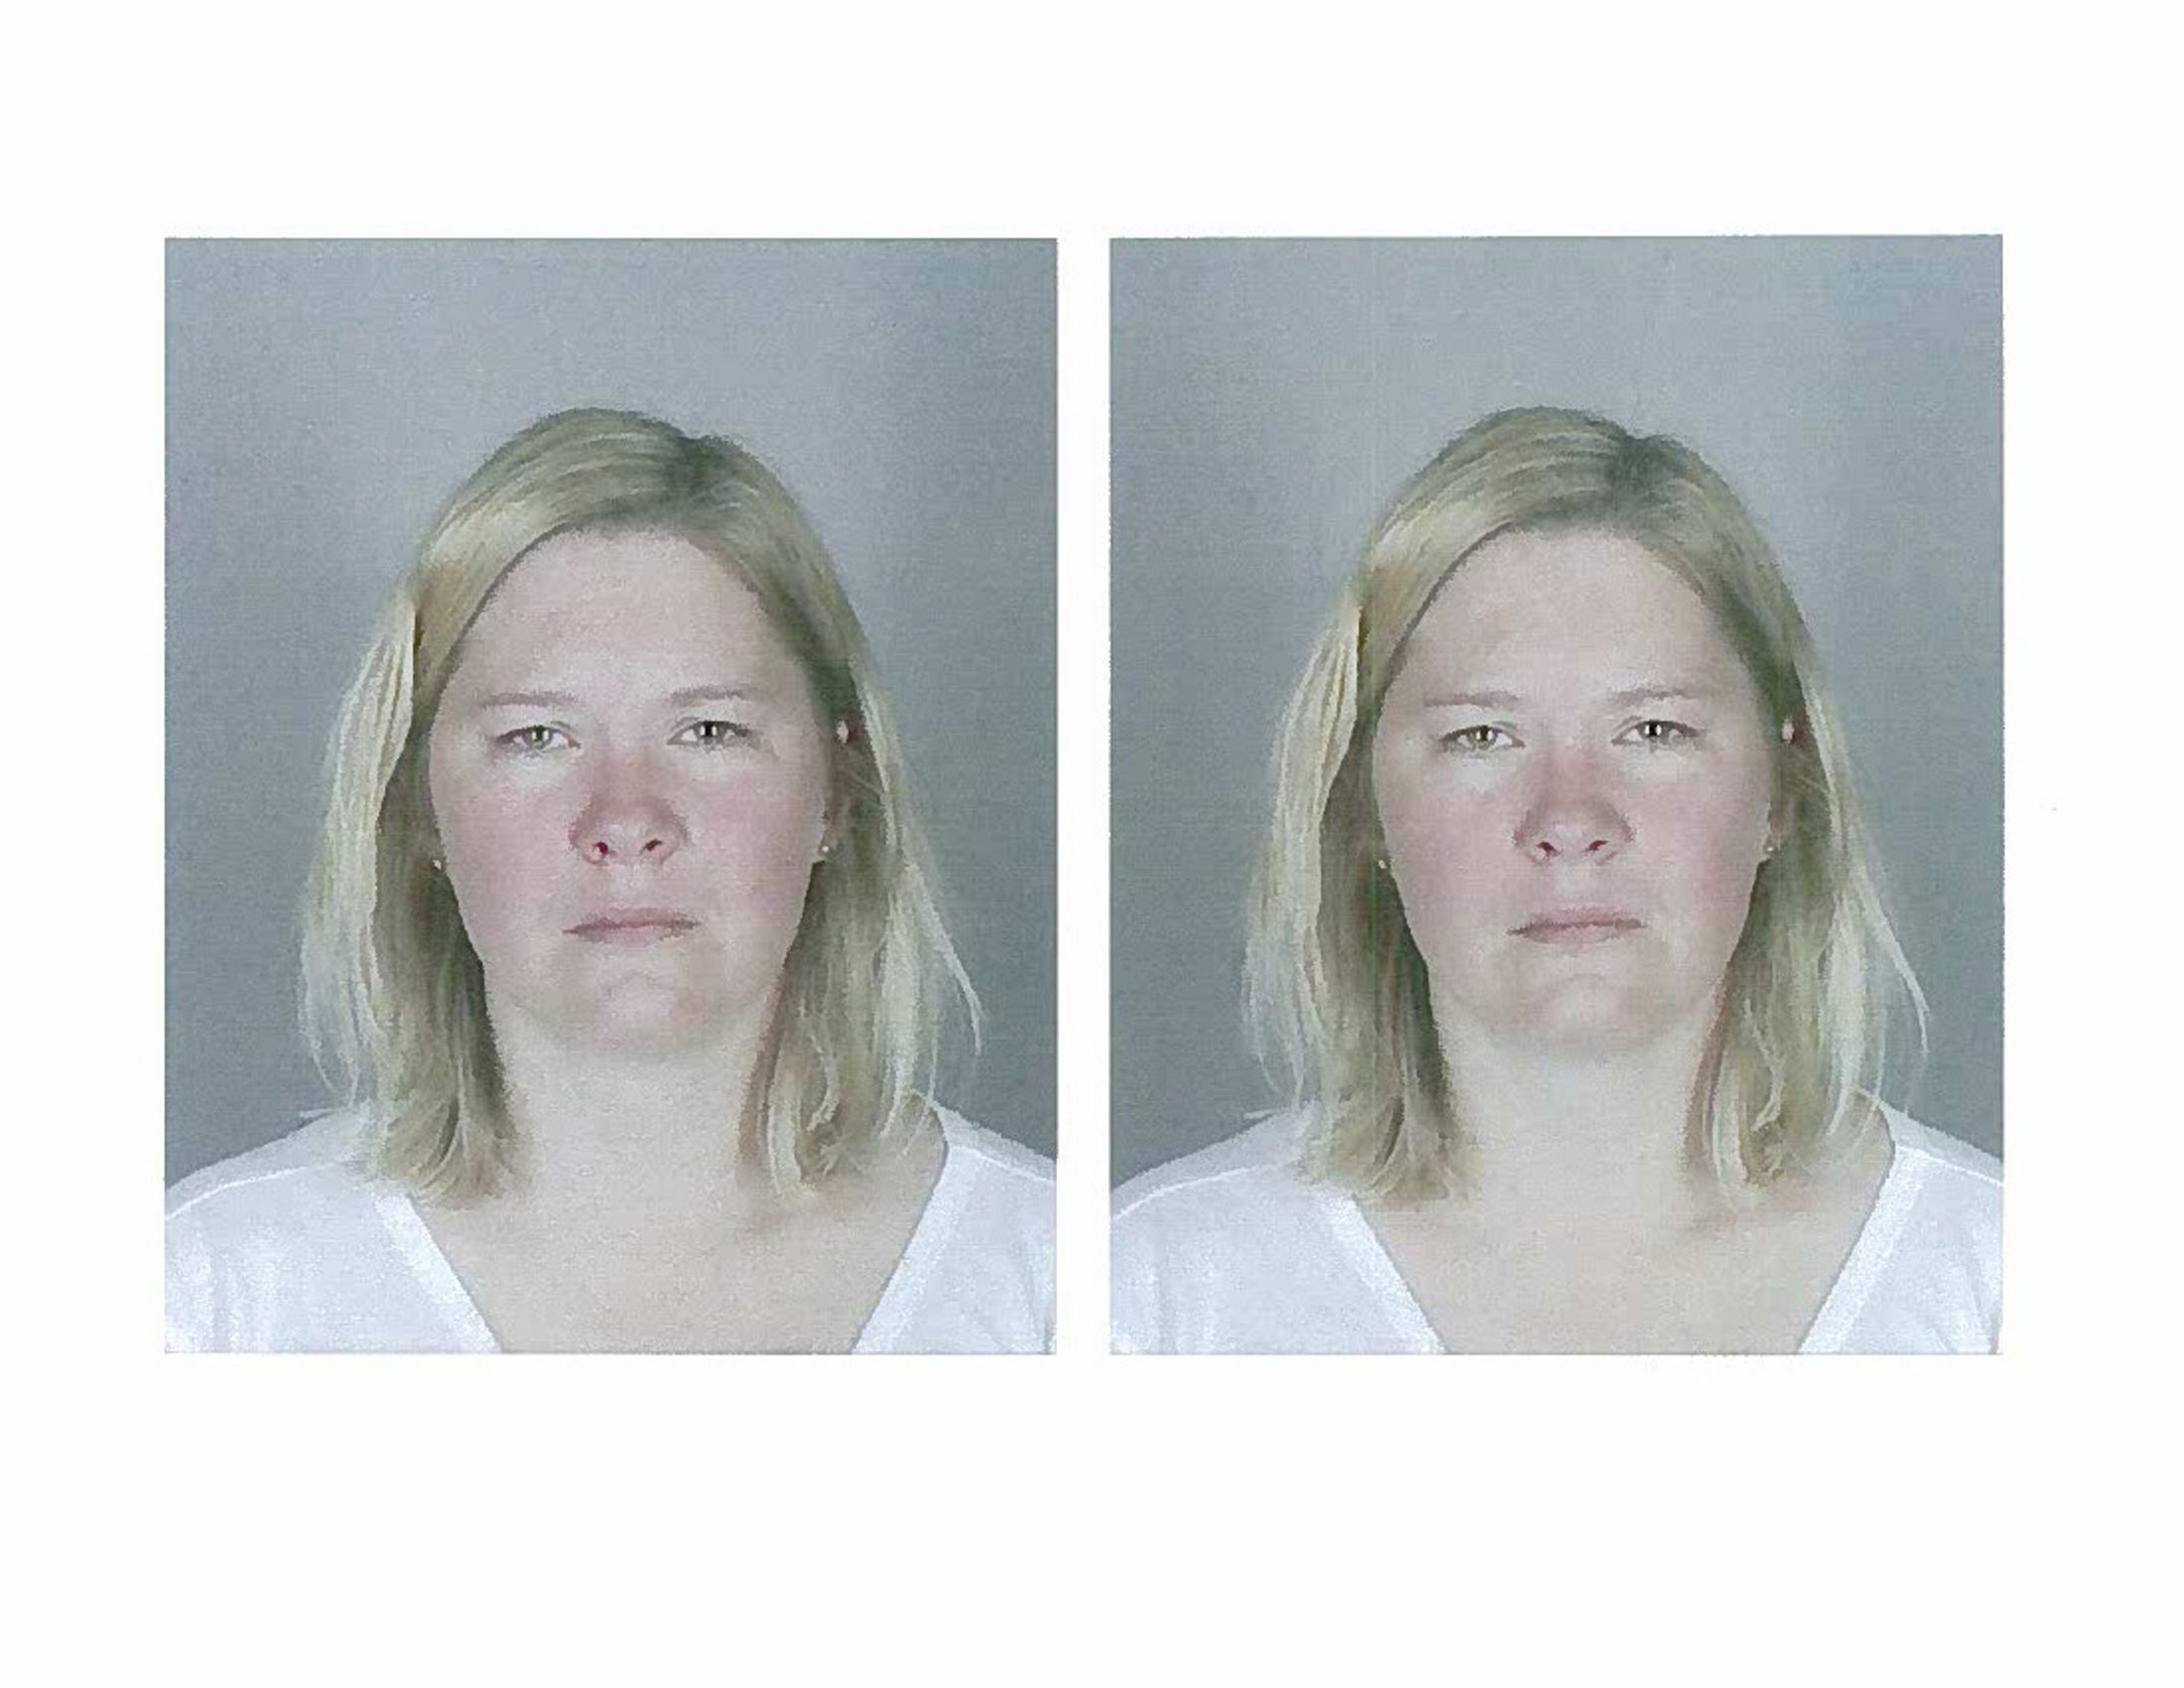 Kimberly A. Lawton was accused of poisoning.